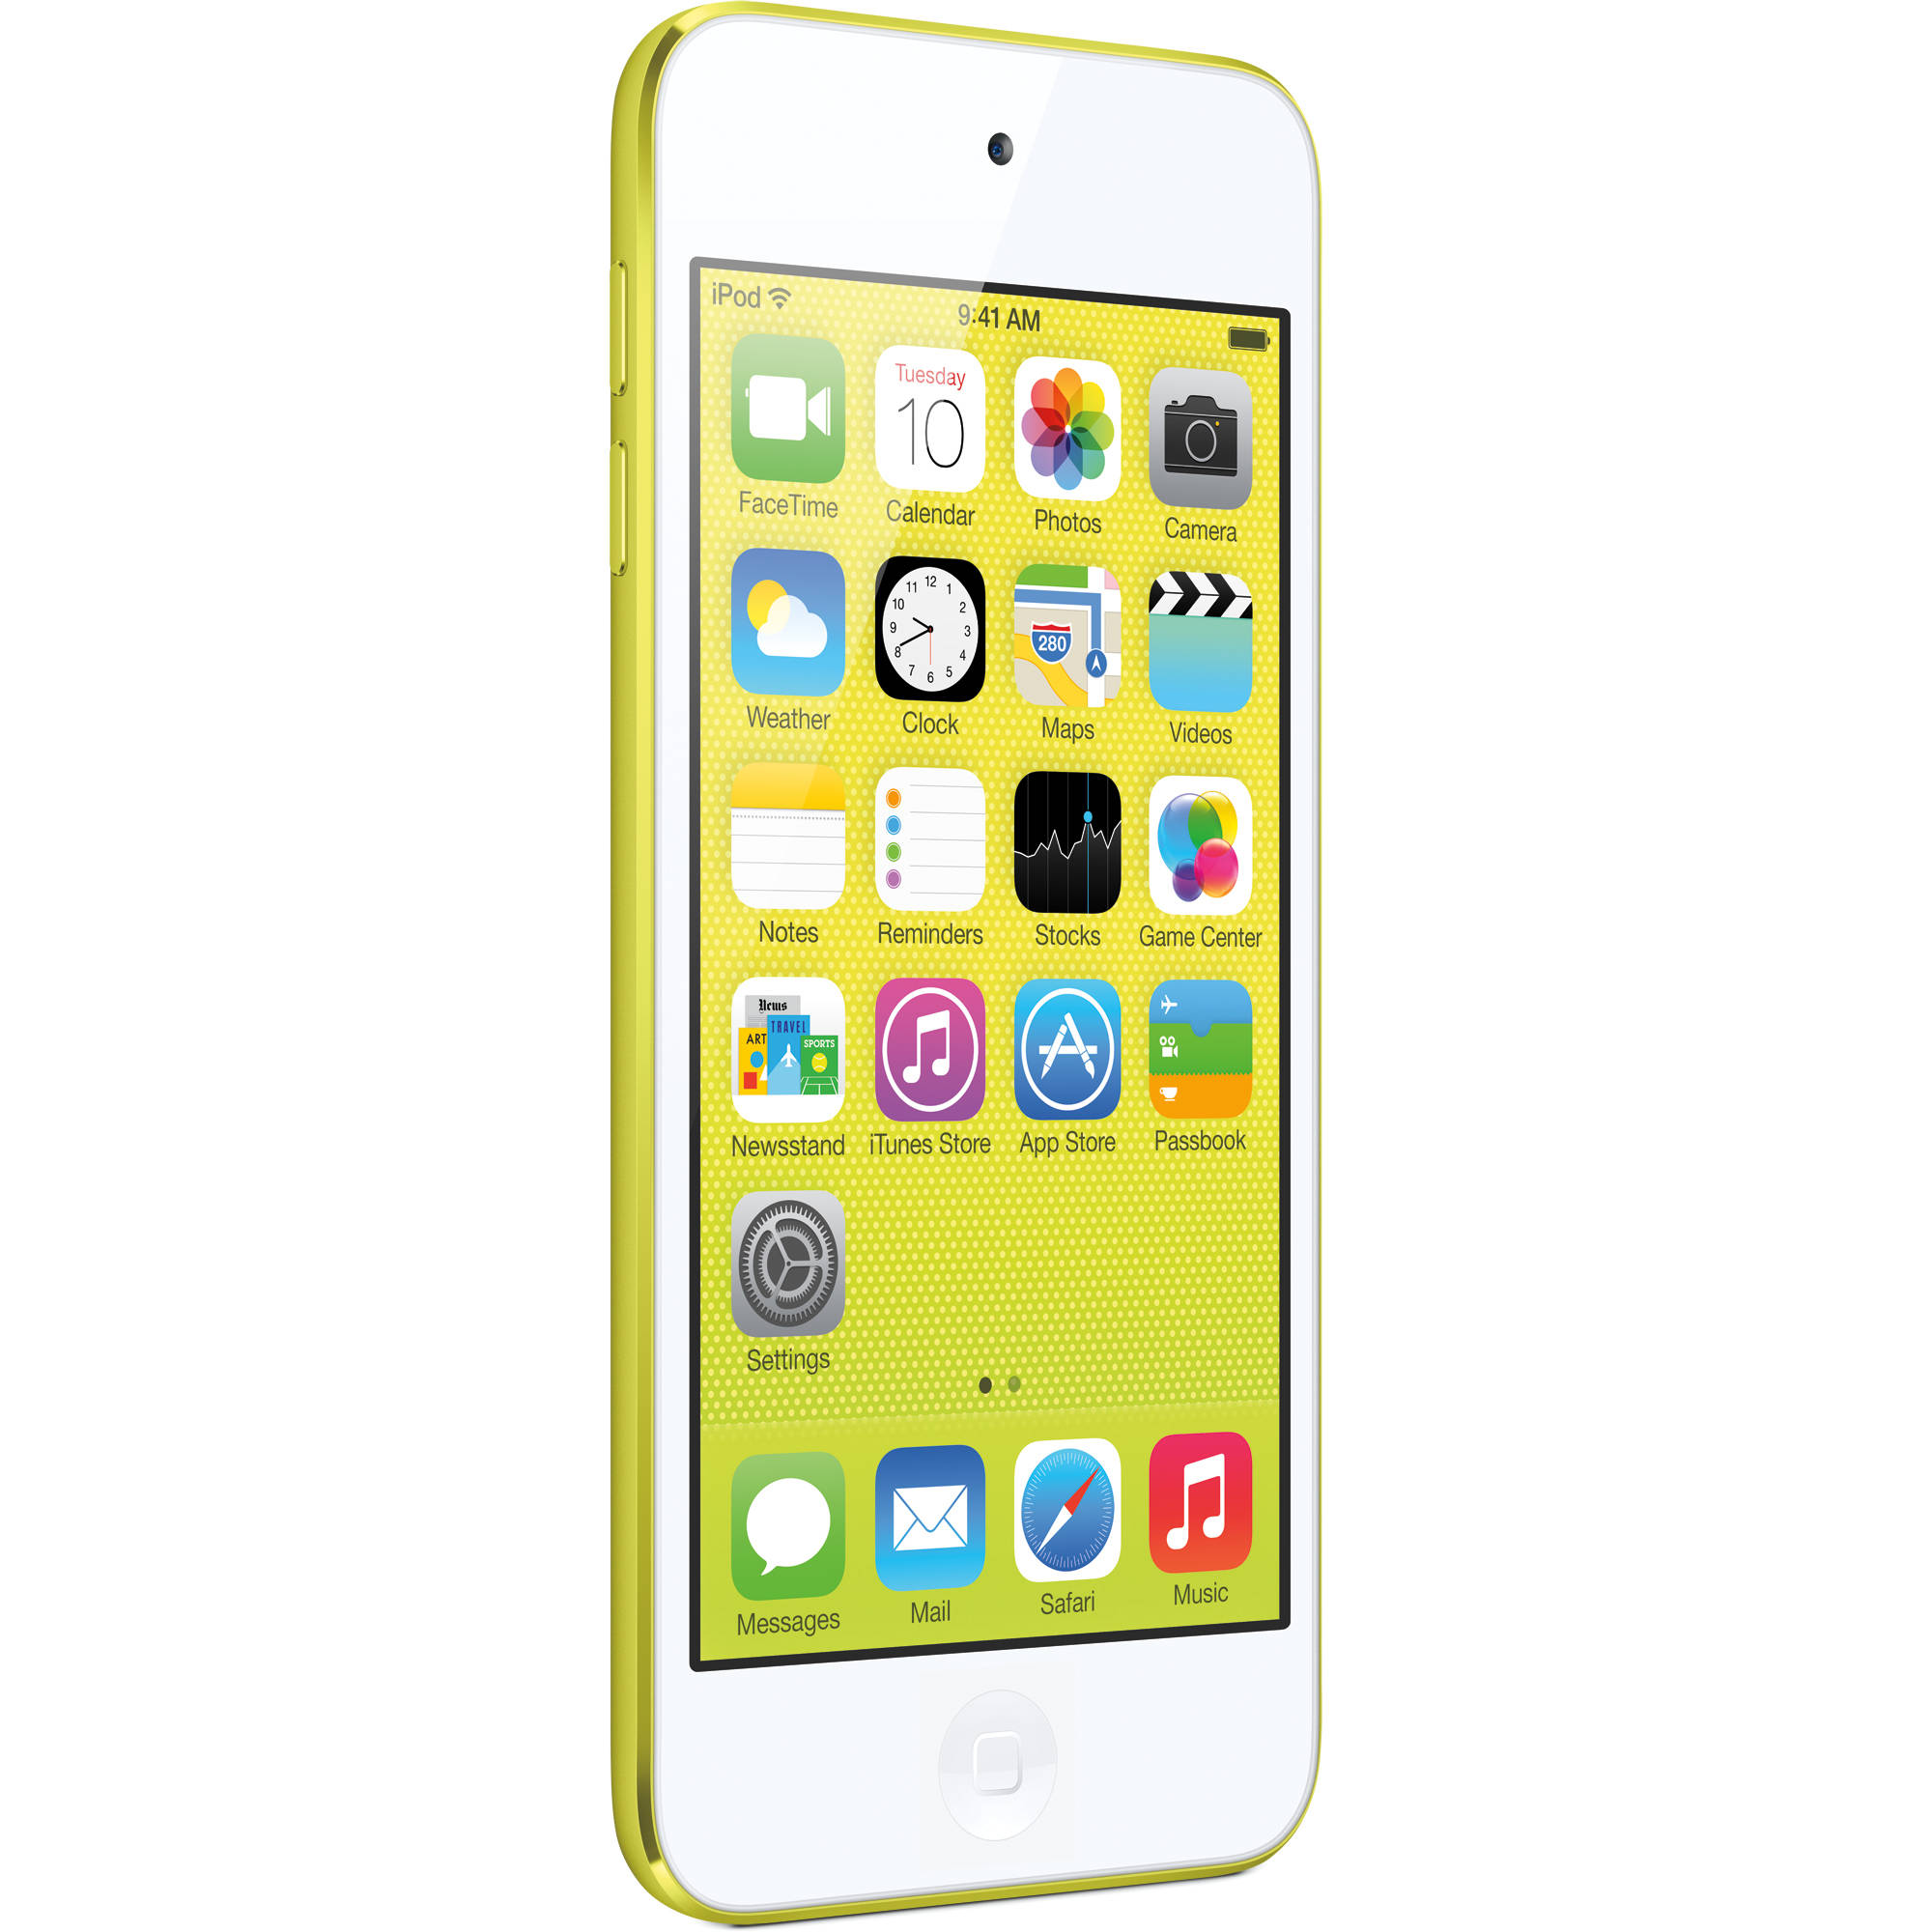 Ipod 5 yellow cheap dresses